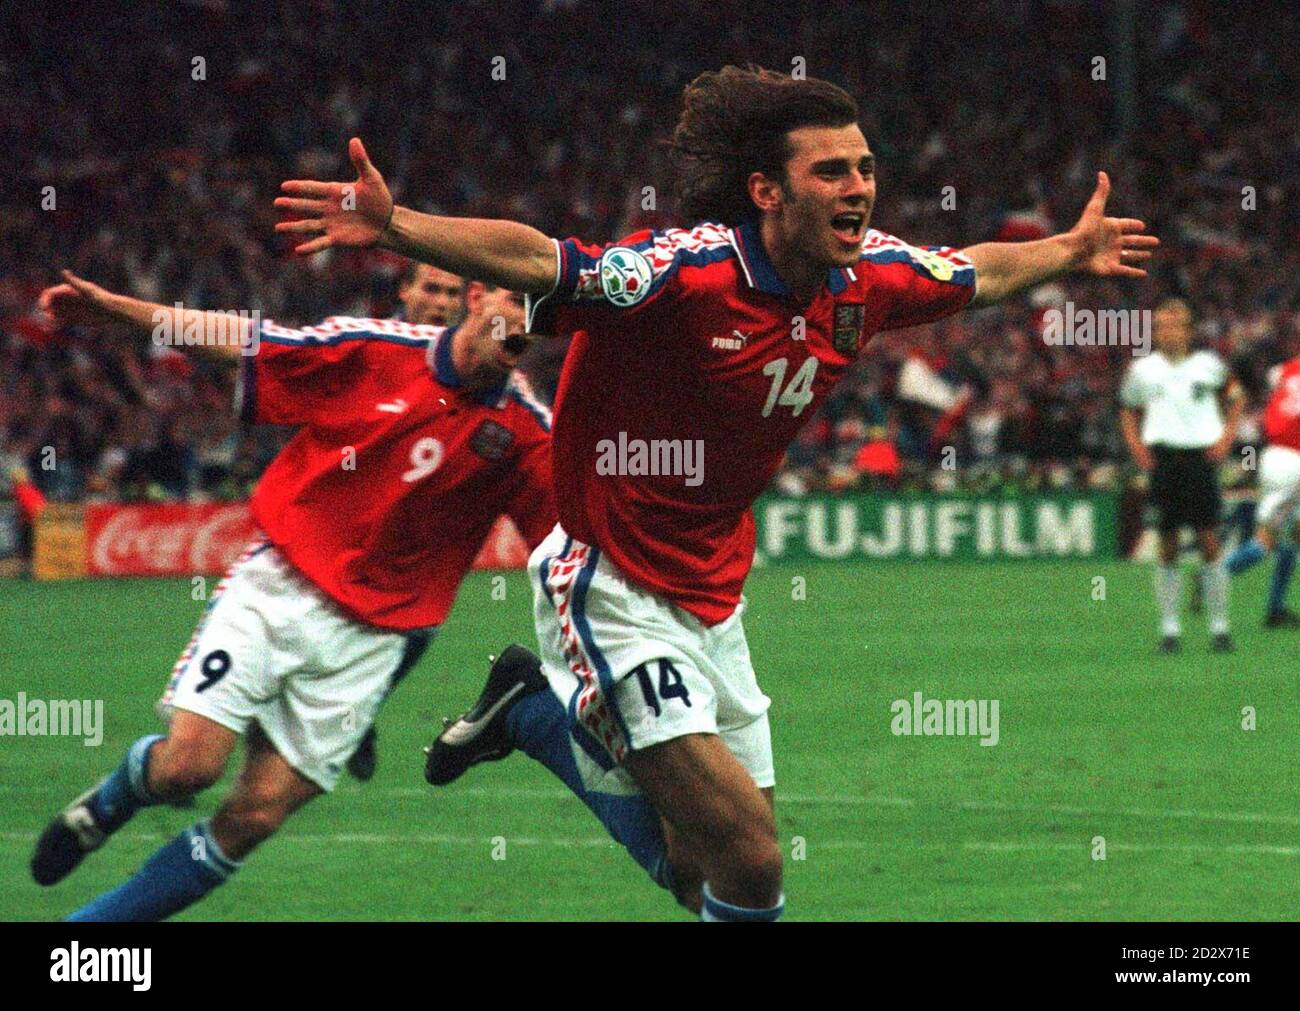 Patrik Berger celebrates opening the scoring for Czech Republic from a penalty against Germany in today's (Sun) Euro 96 Final at Wembley. Photo by Sean Dempsey/PA Stock Photo